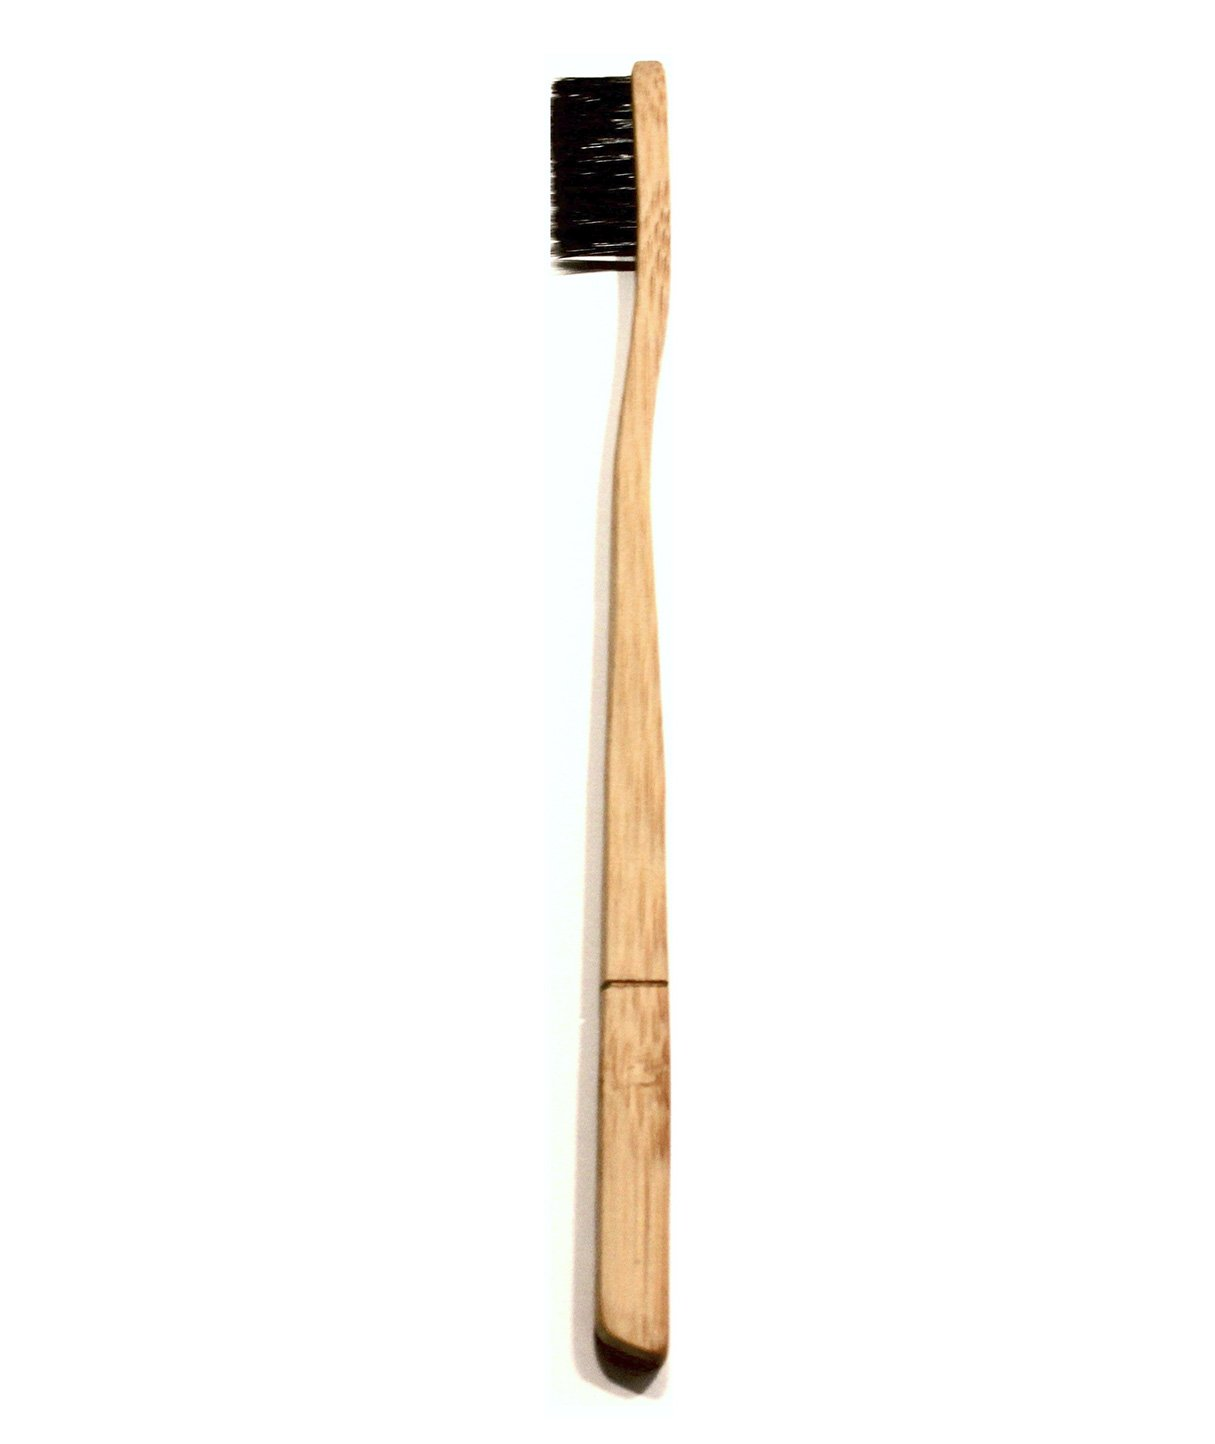 Brosse à dents 100% Biodégradable - Smiloh 81 Nature - Véganie